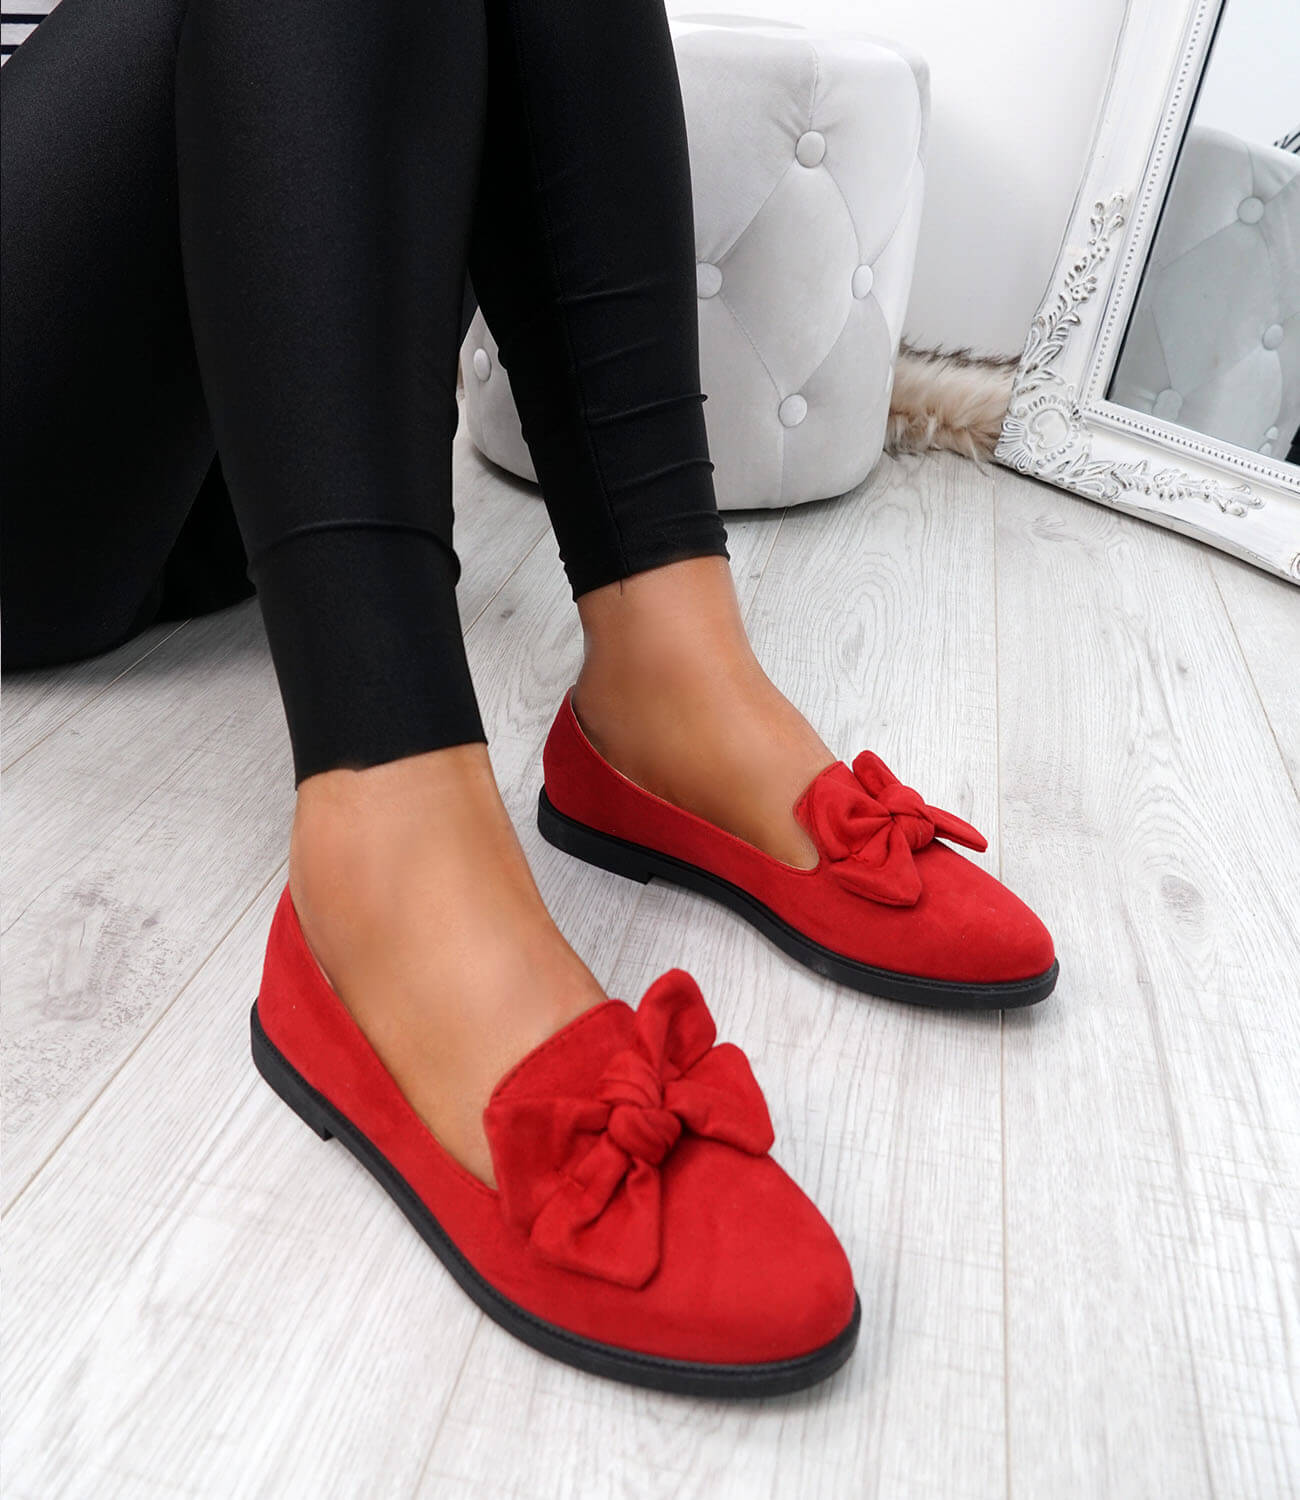 WOMENS-LADIES-BOW-BALLERINA-PUMPS-FLATS-SLIP-ON-BALLET-CASUAL-WORK-SHOES-SIZE thumbnail 34